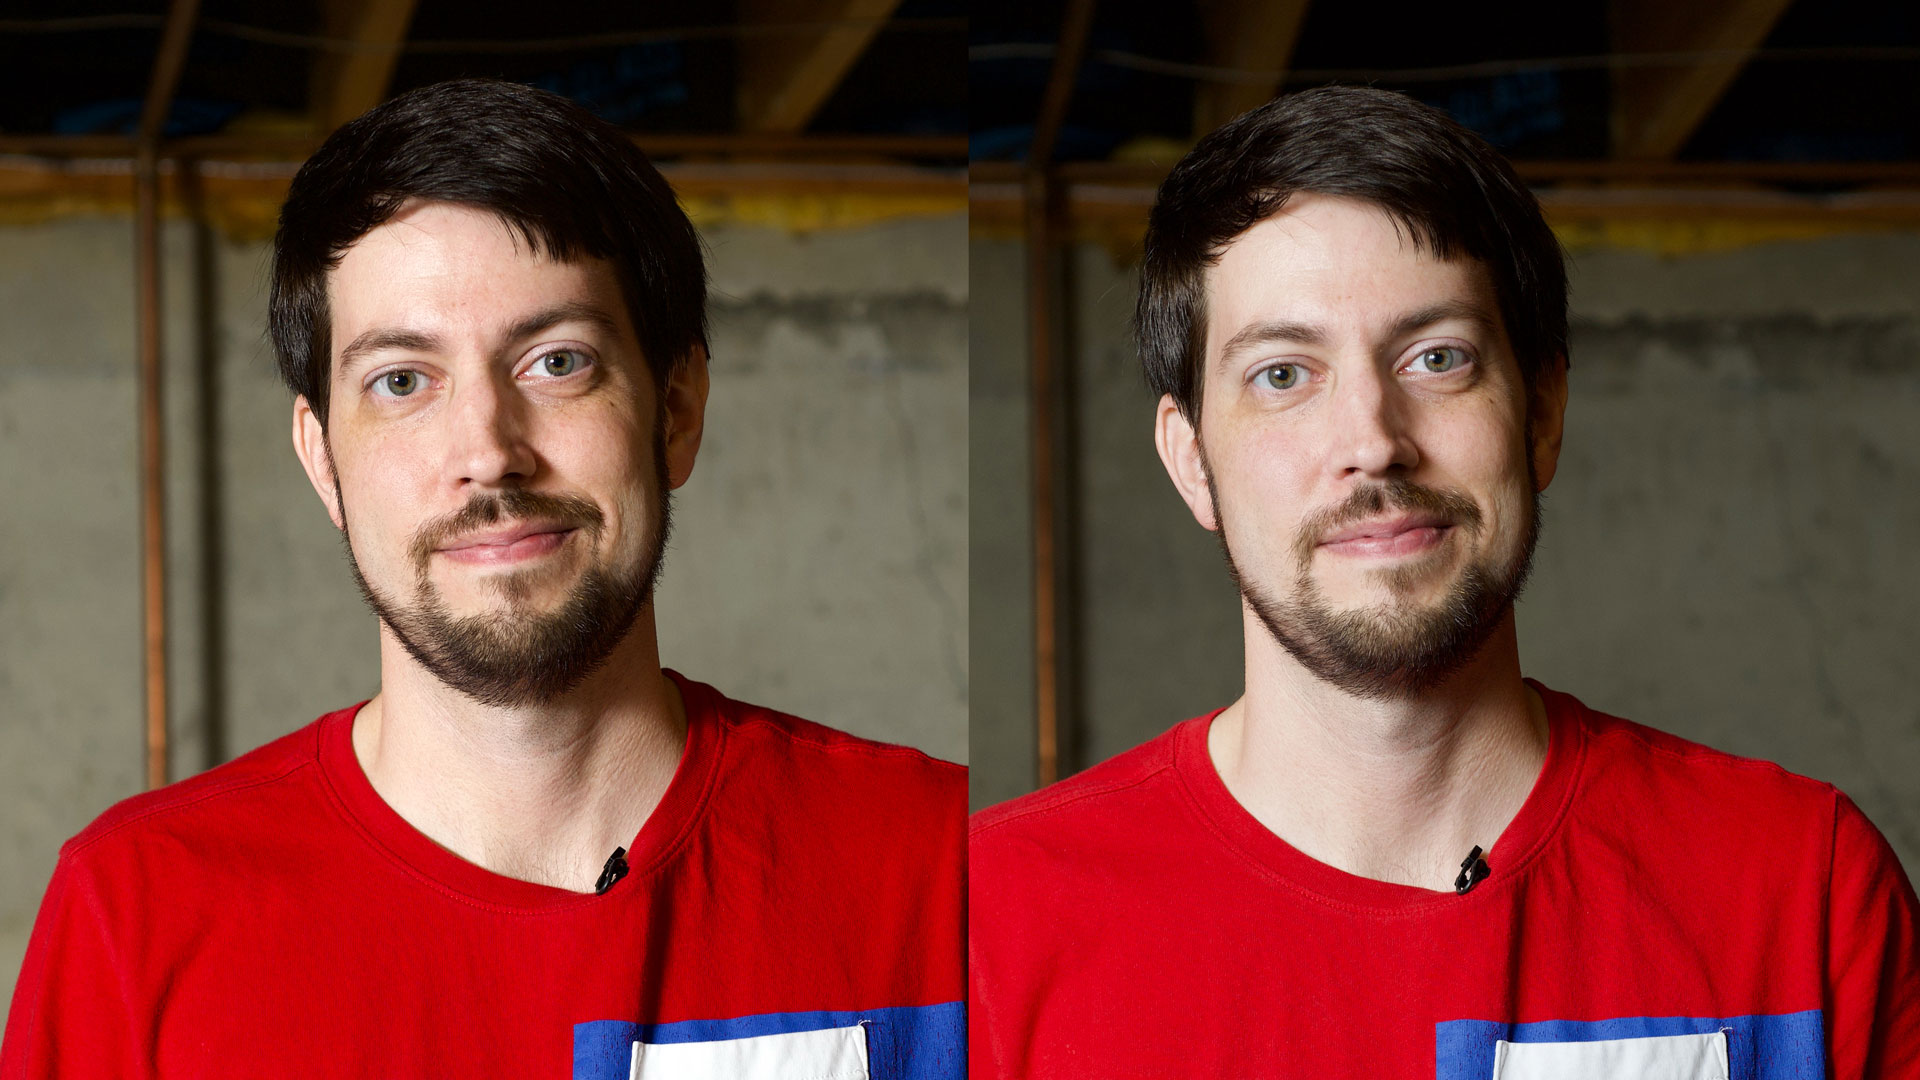 Jeff - Hard and soft light comparison